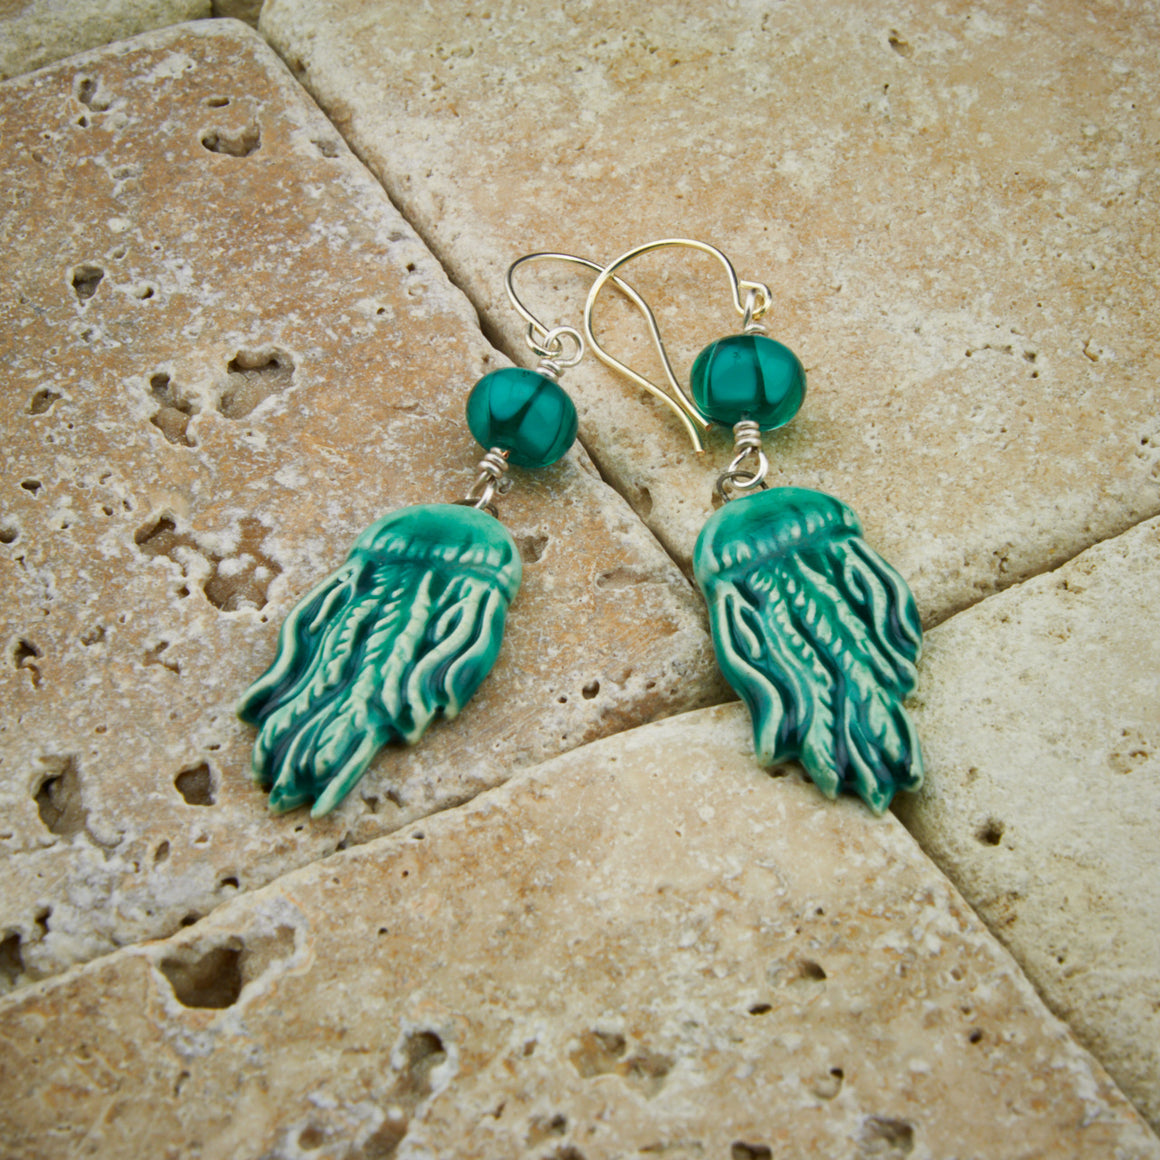 Jammin' Jellyfish Earrings